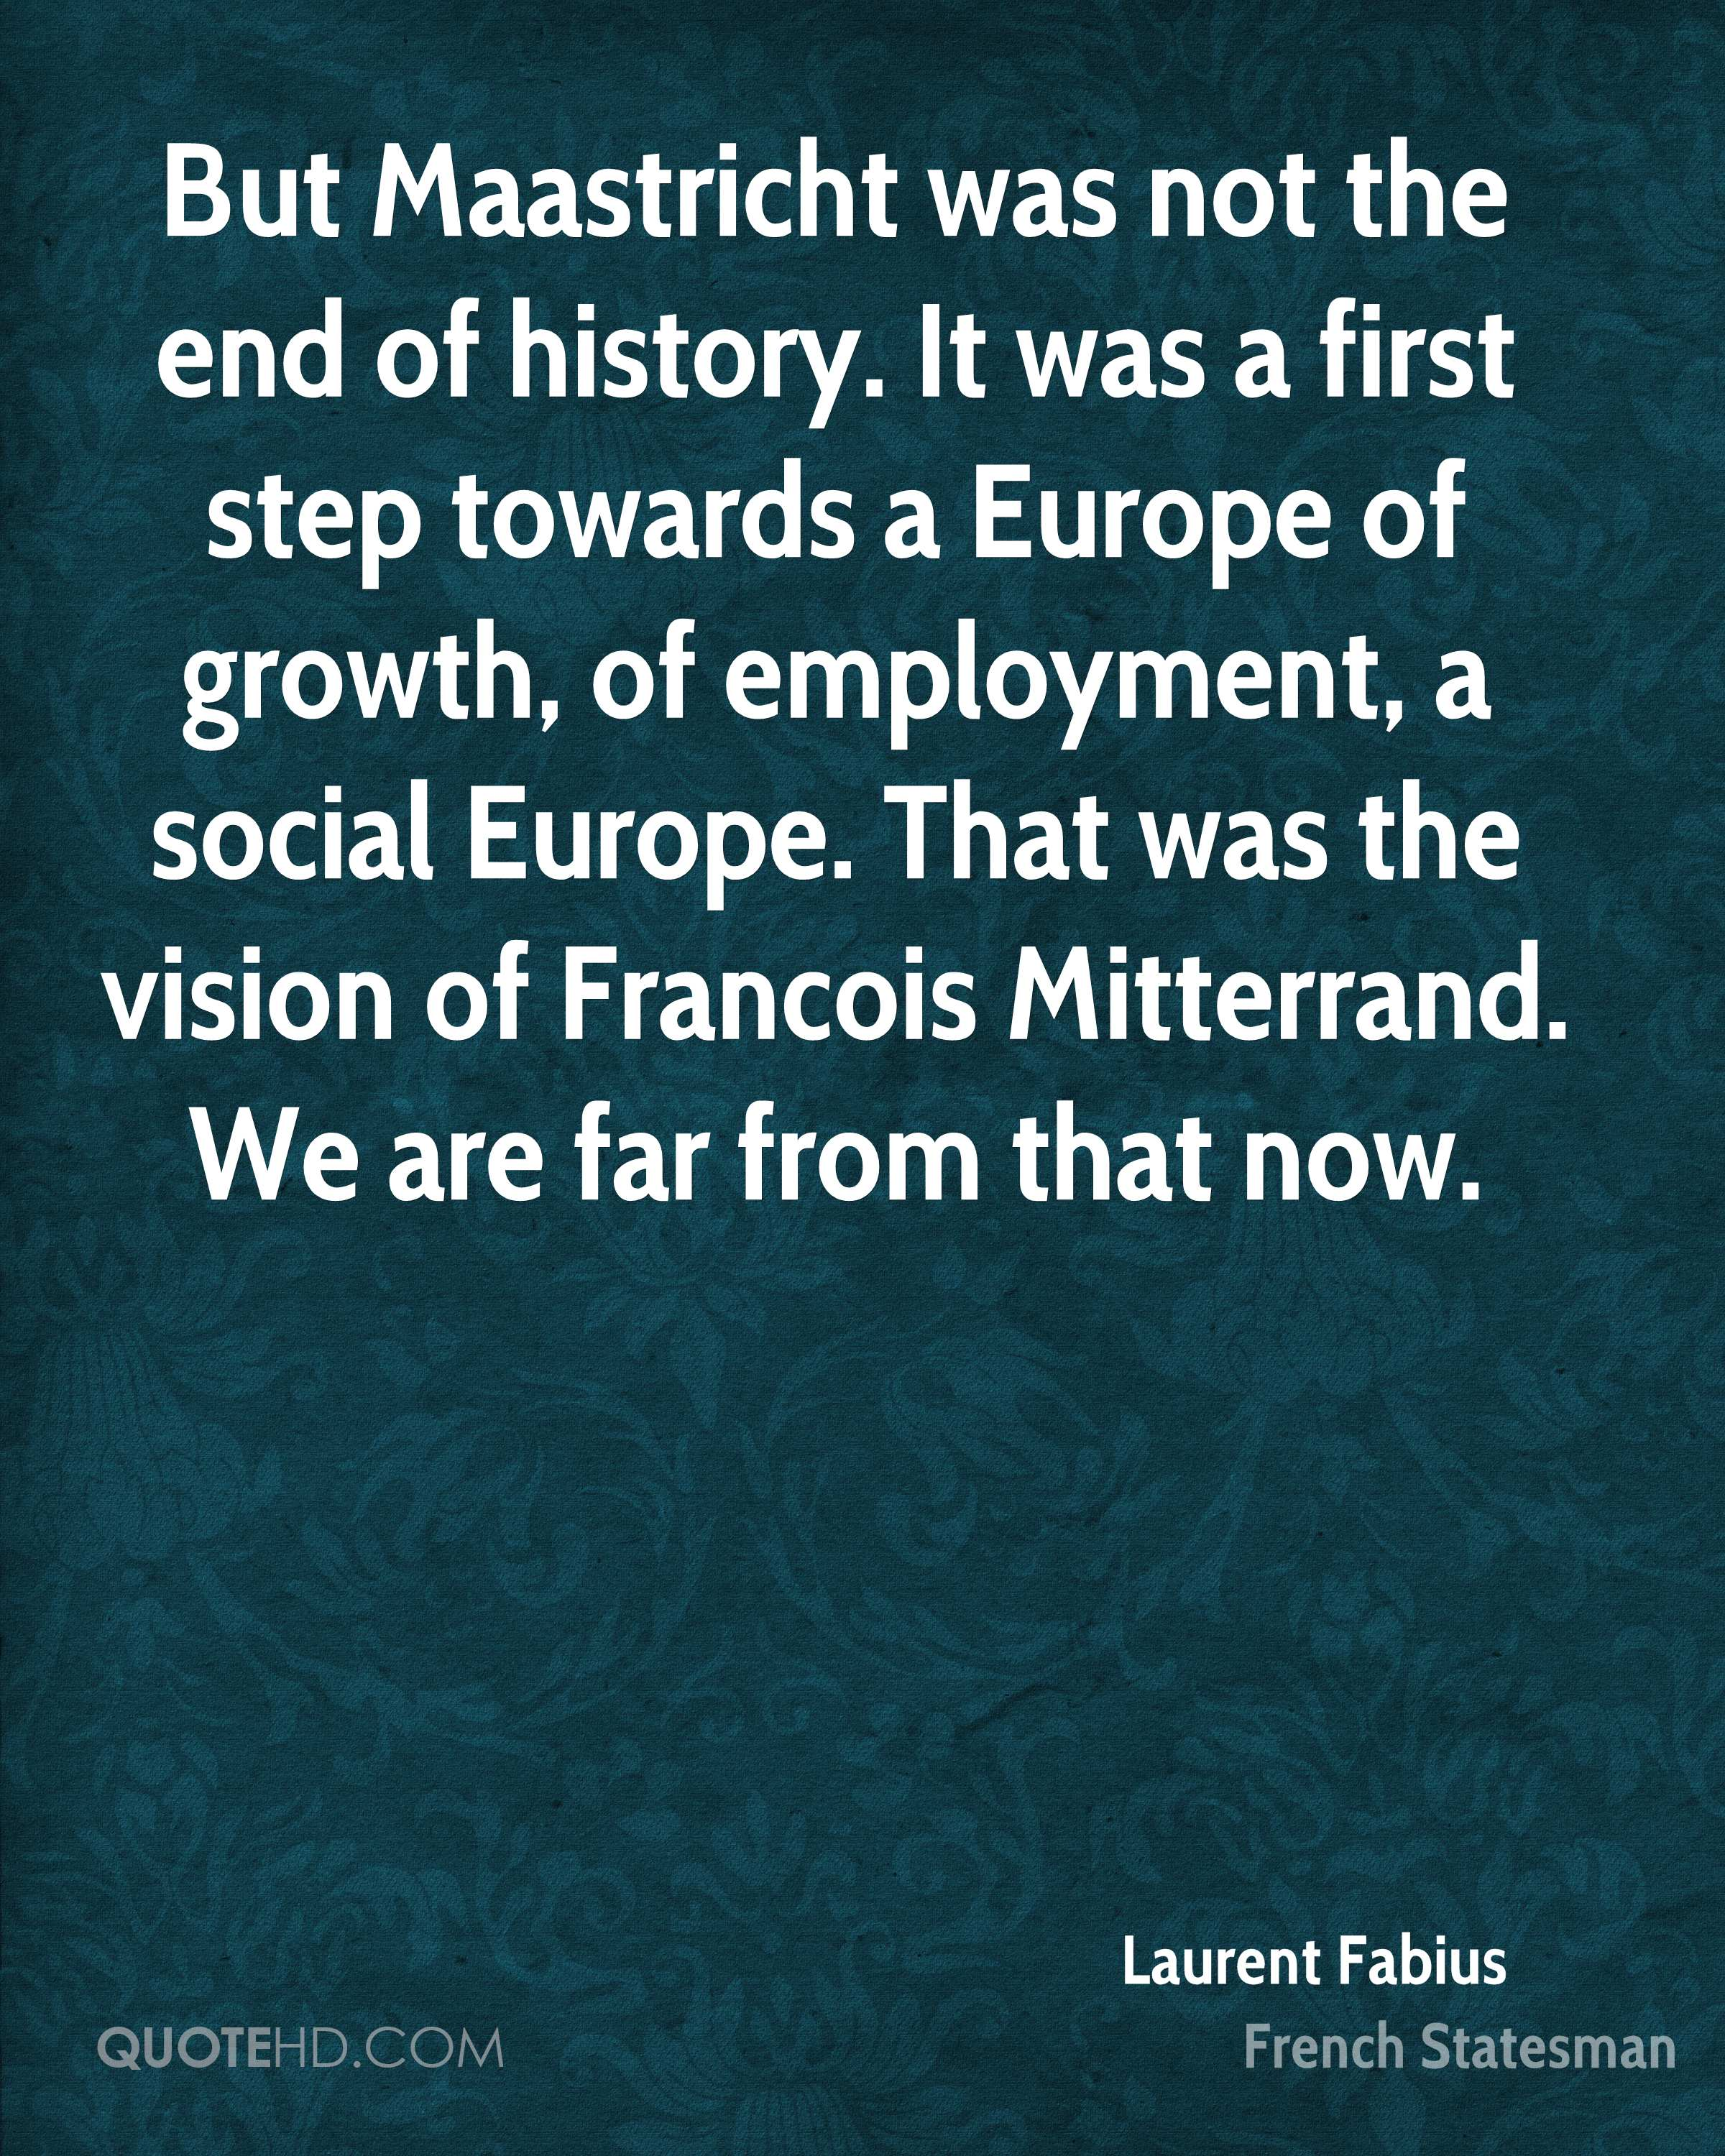 But Maastricht was not the end of history. It was a first step towards a Europe of growth, of employment, a social Europe. That was the vision of Francois Mitterrand. We are far from that now.